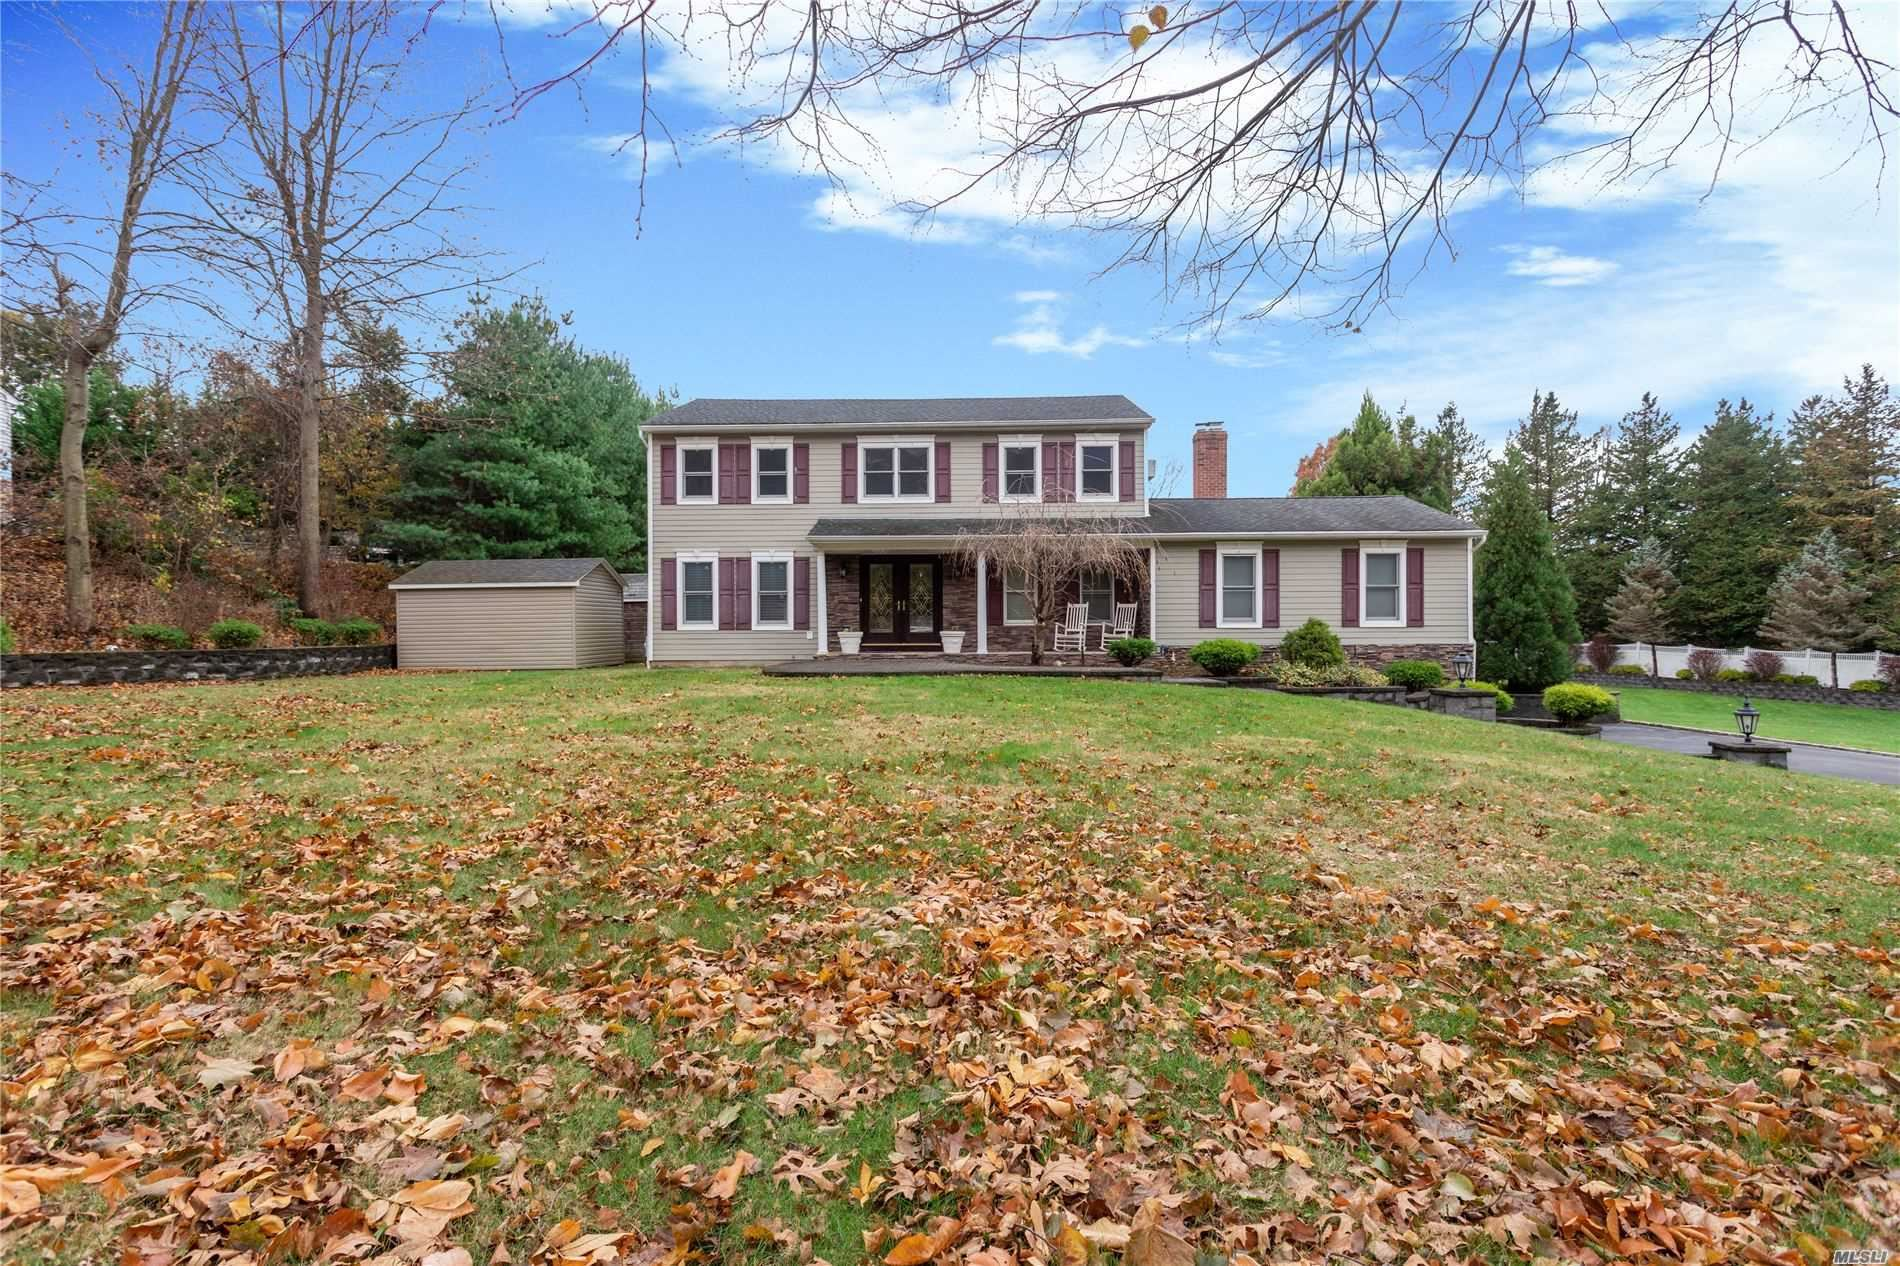 6 Wood Hollow Lane, Fort Salonga, NY 11768 - MLS#: 3181662